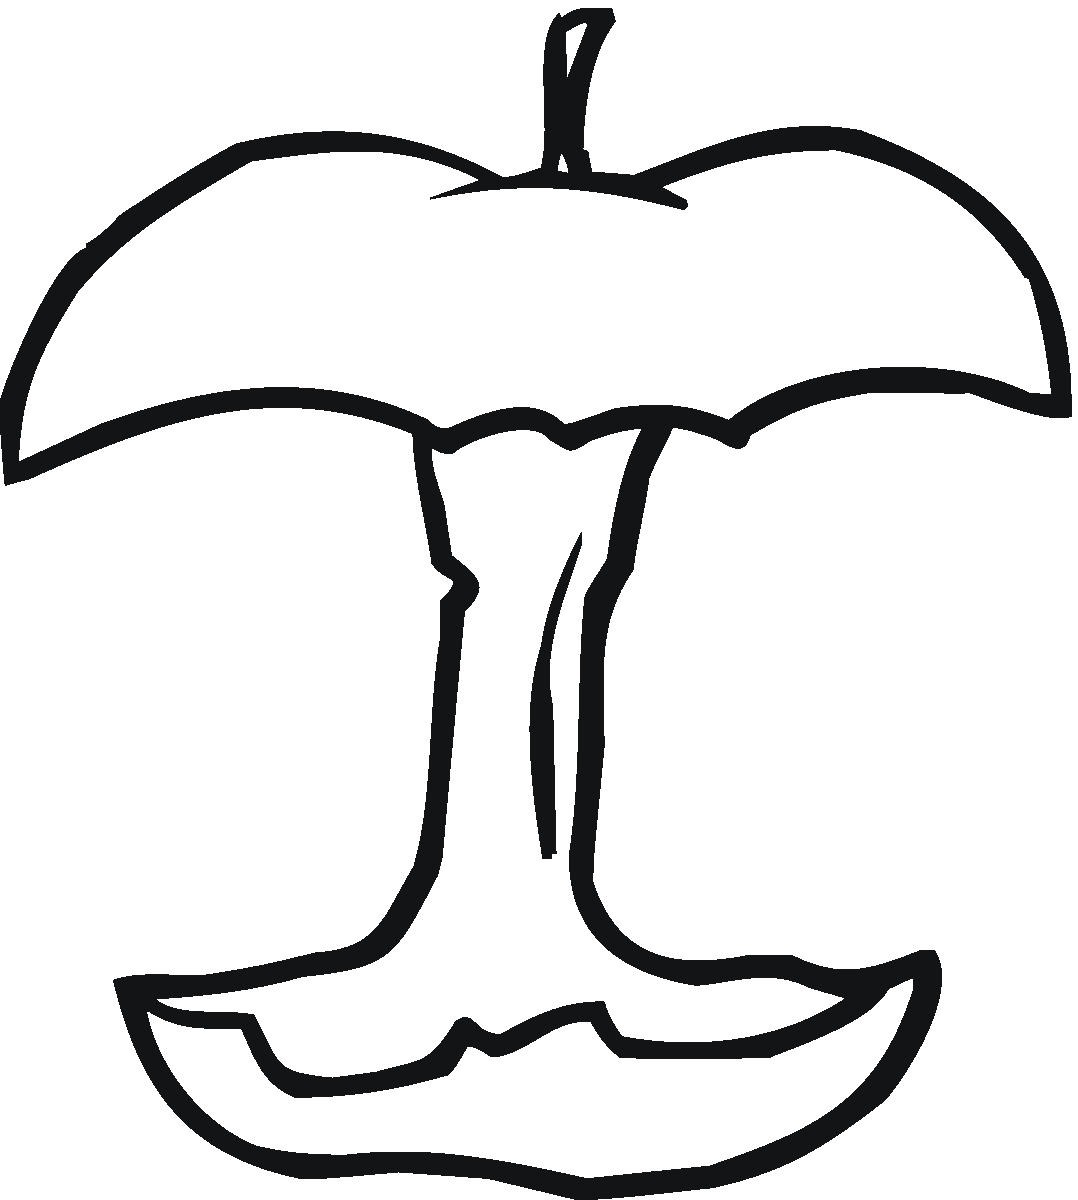 coloring page of an apple apple coloring pages fotolipcom rich image and wallpaper page an of apple coloring